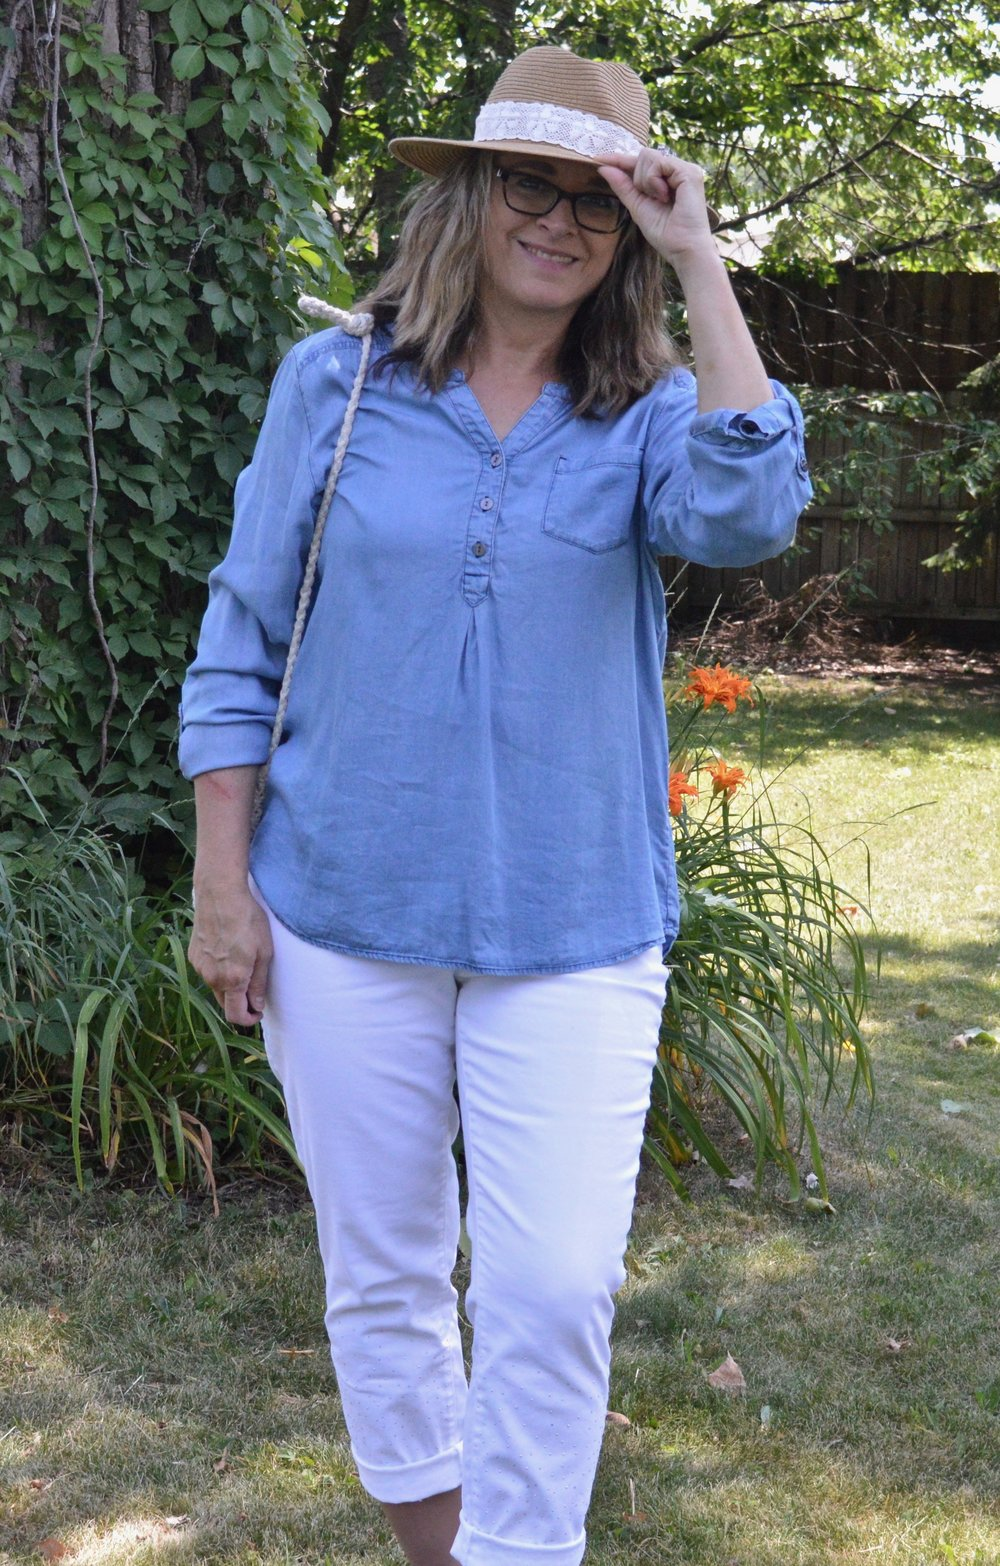 Outfit inspiration - chambray shirt with white pants